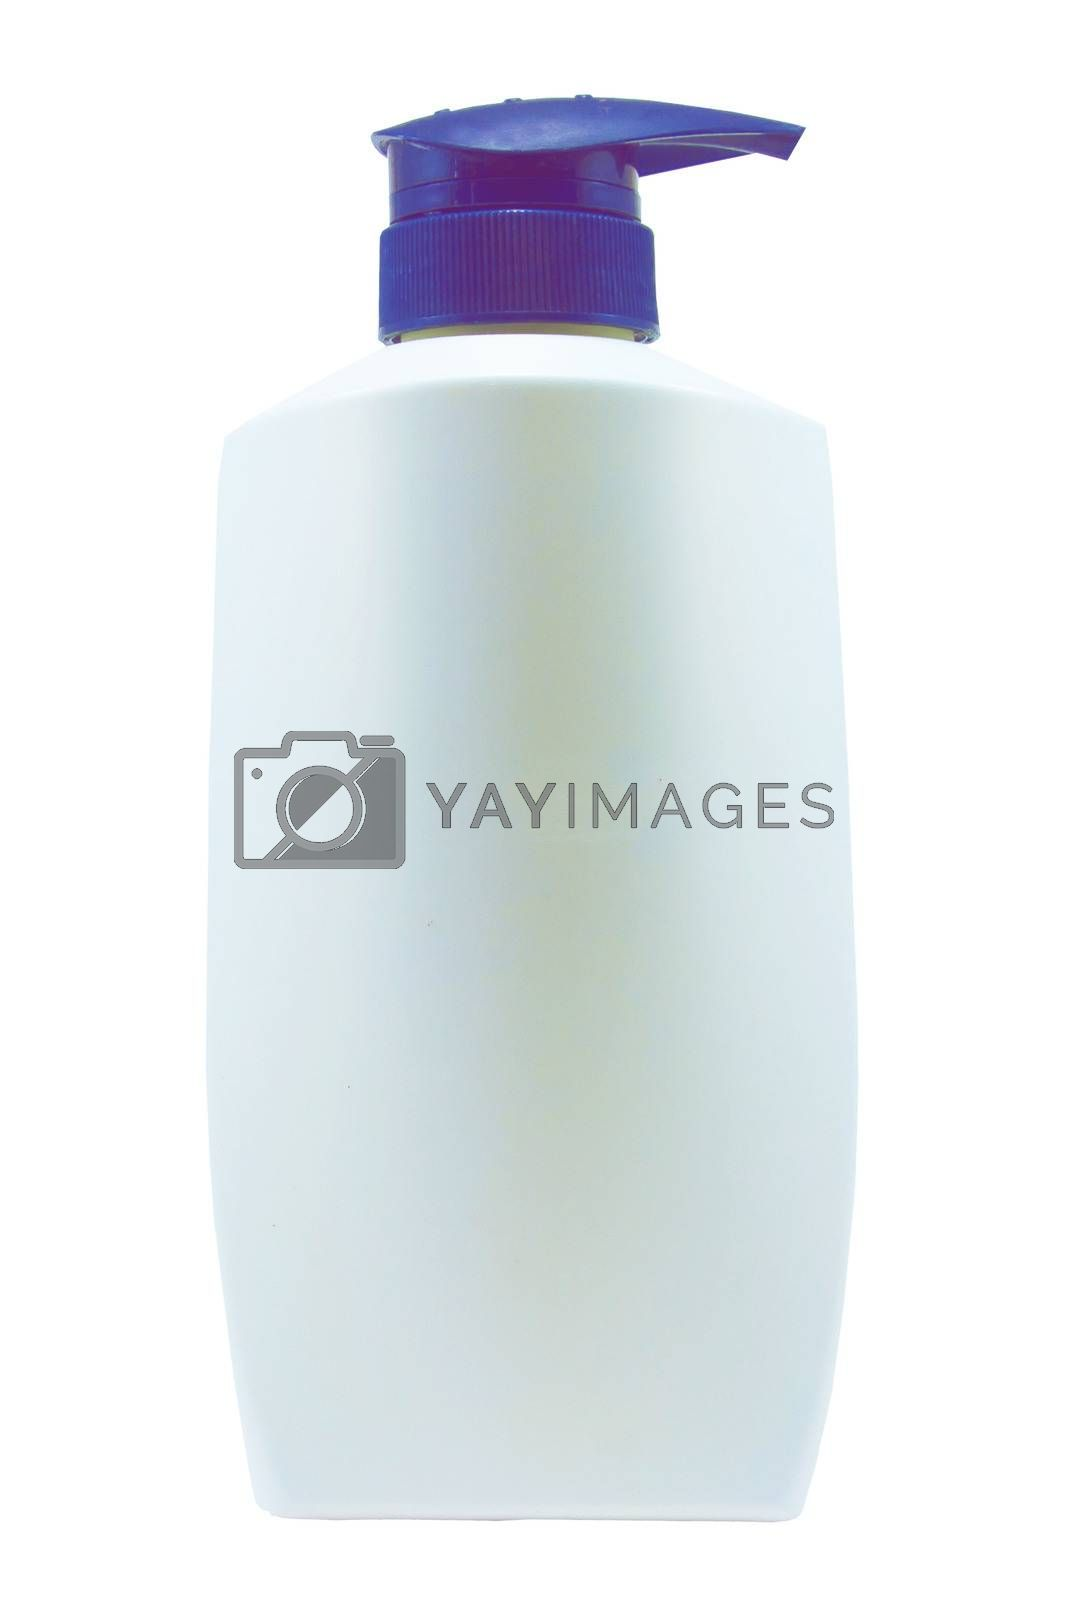 Royalty free image of Plastic Clean White Bottle With blue  Dispenser Pump On White Background by sutipp11